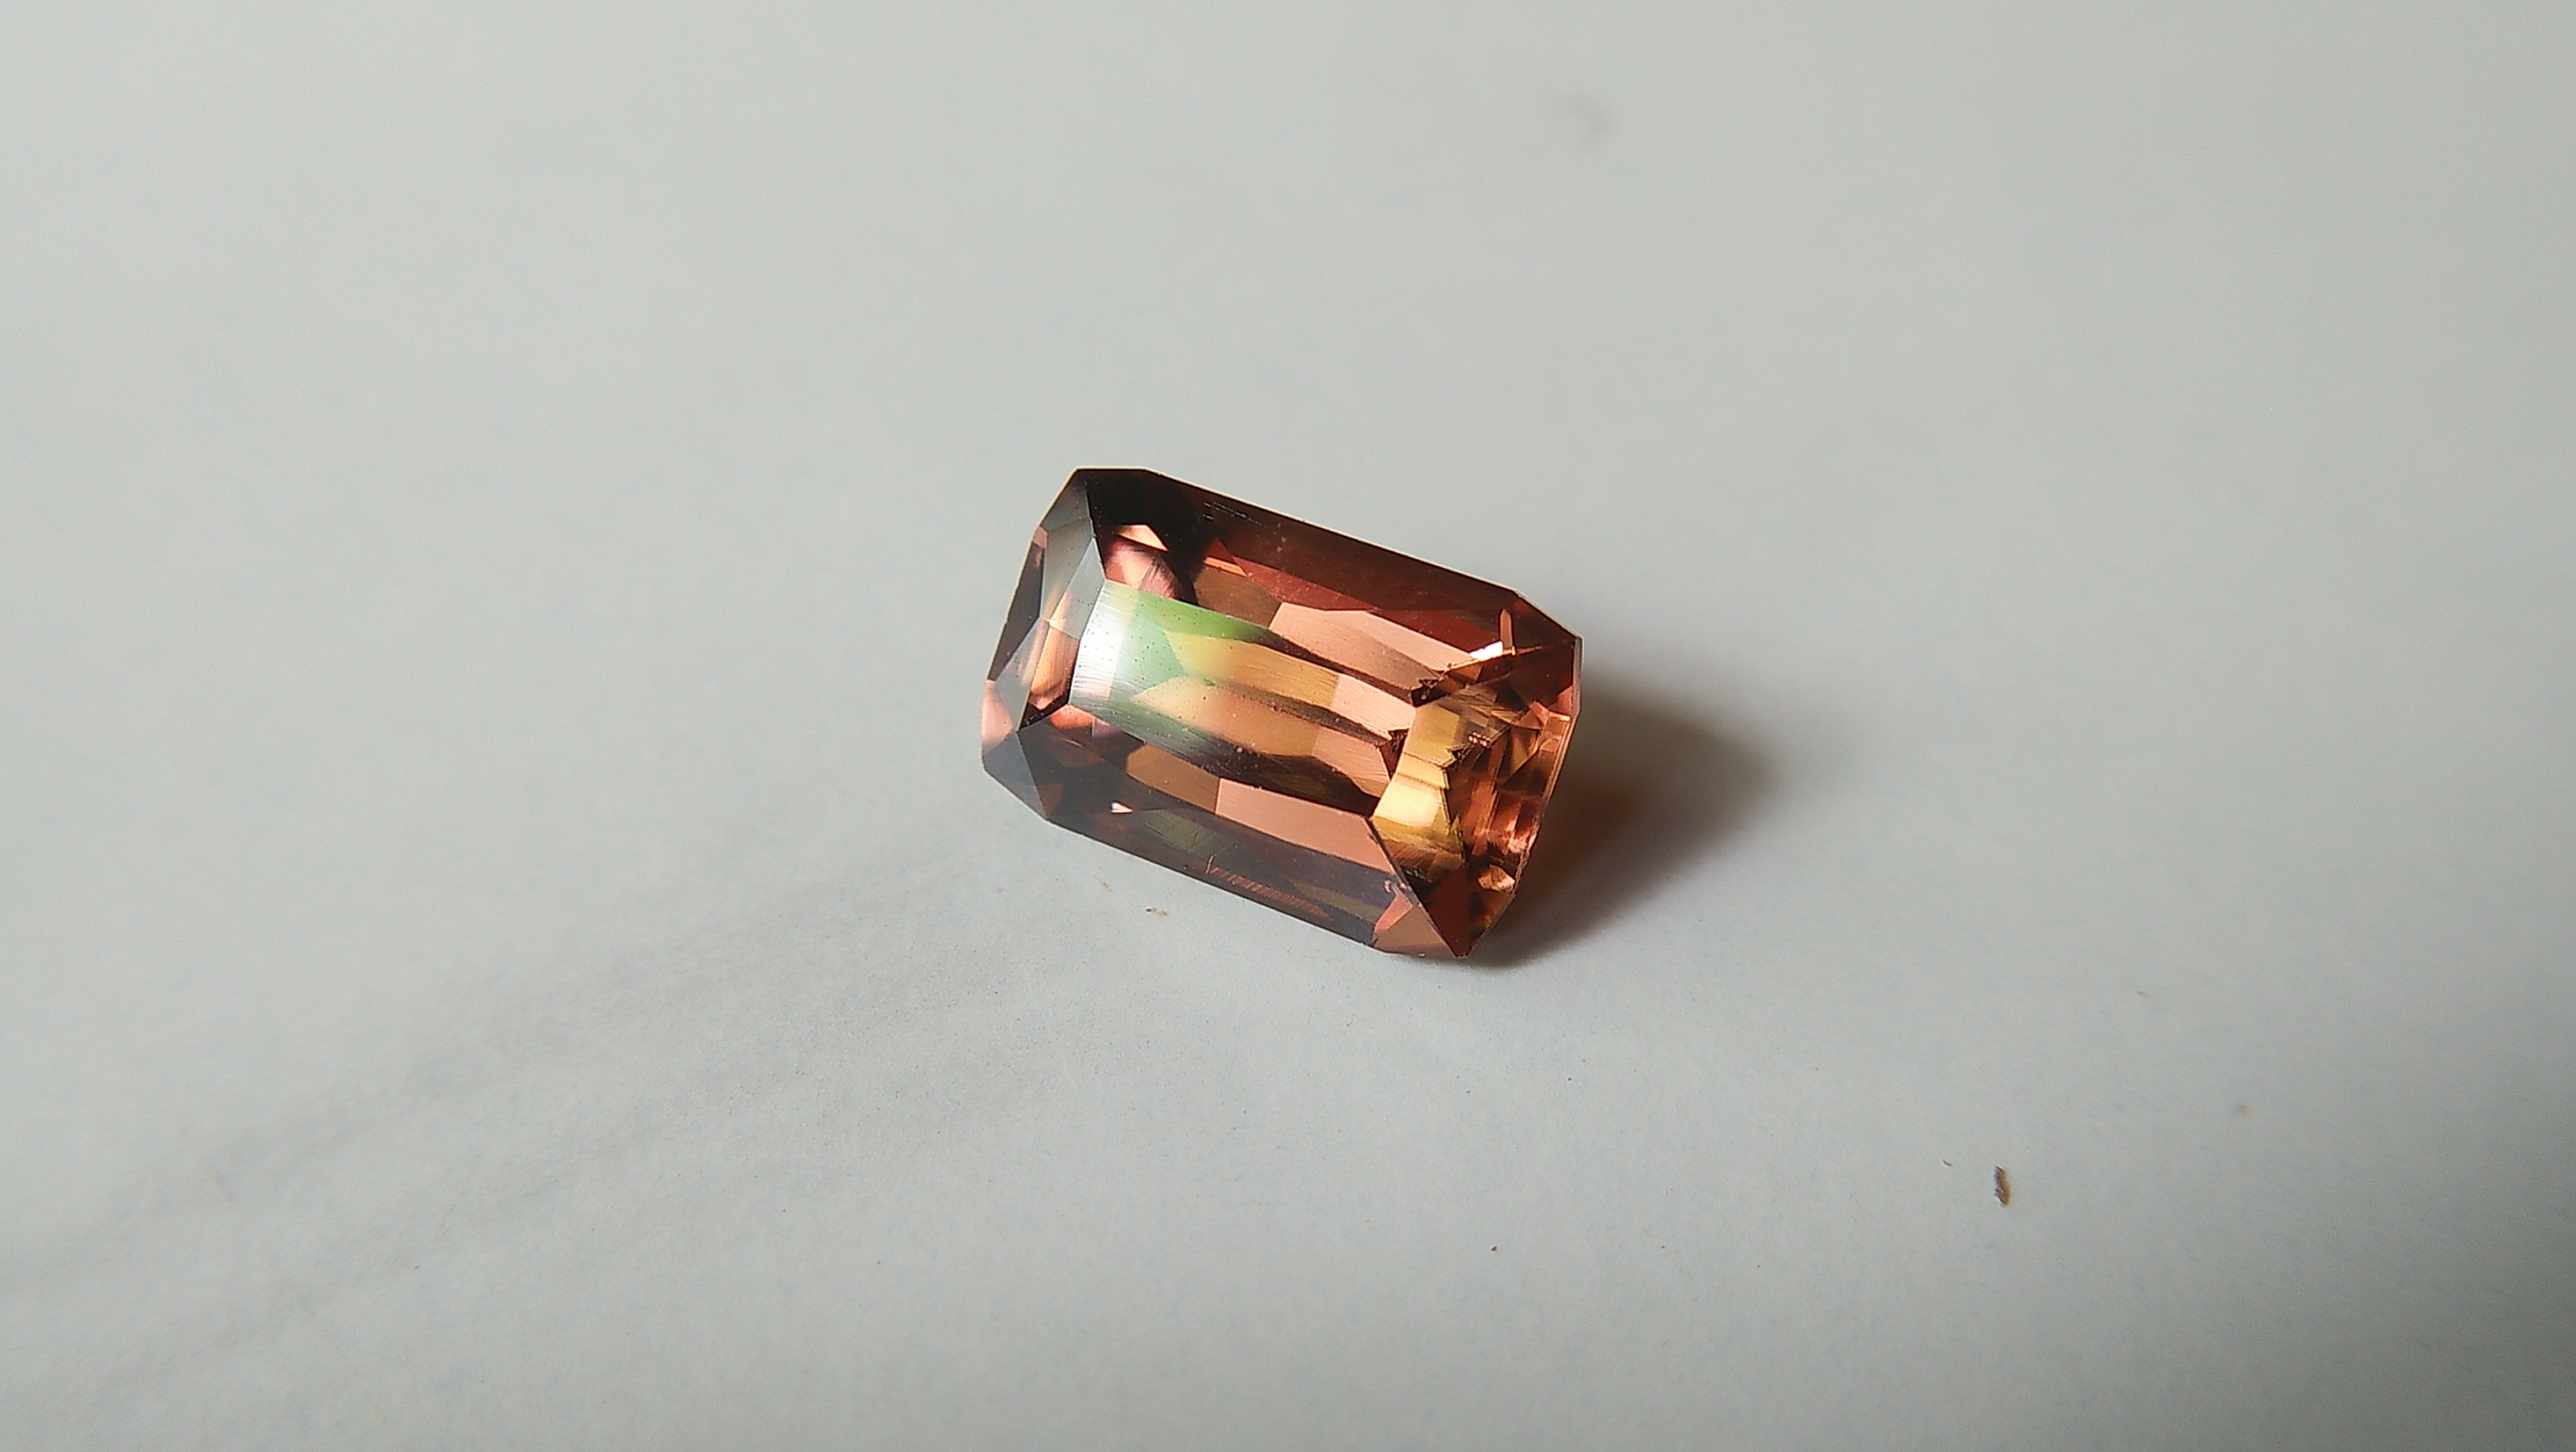 "Ceylon Natural "" chocolate 🍫"" Zircon called ""jargoon"". It's 4.70cts weight, 11mm x 7mm x 5.3mm dimension stone unearthed from city of gem Ratnapura Sri Lanka"